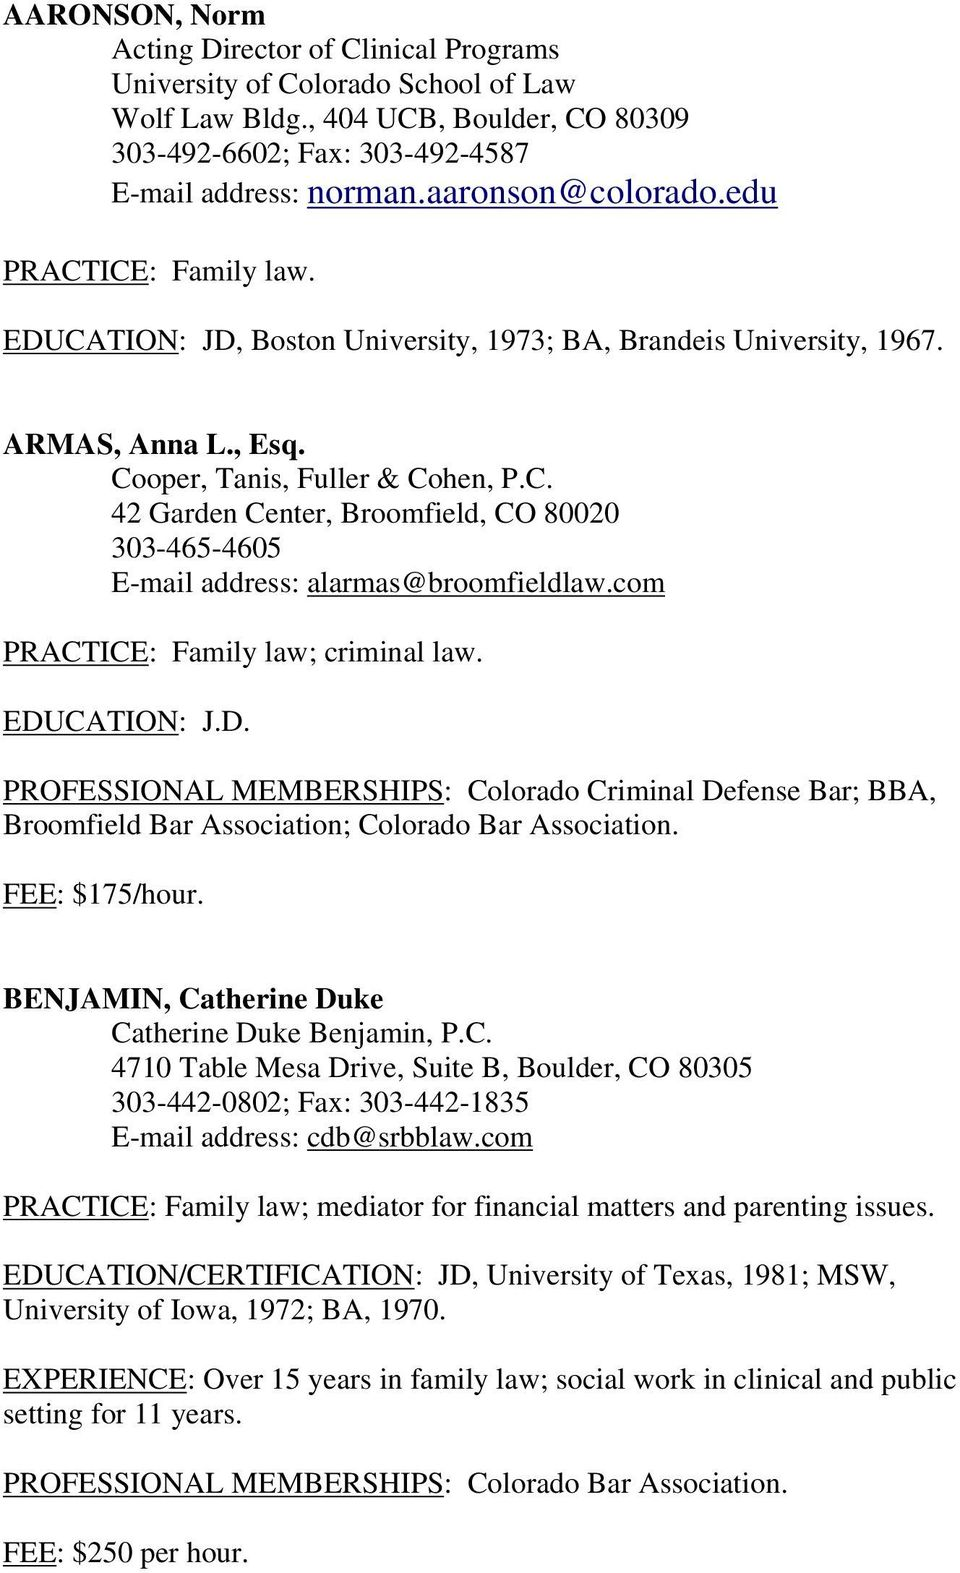 com PRACTICE: Family law; criminal law. EDUCATION: J.D. PROFESSIONAL MEMBERSHIPS: Colorado Criminal Defense Bar; BBA, Broomfield Bar Association; Colorado Bar Association. FEE: $175/hour.